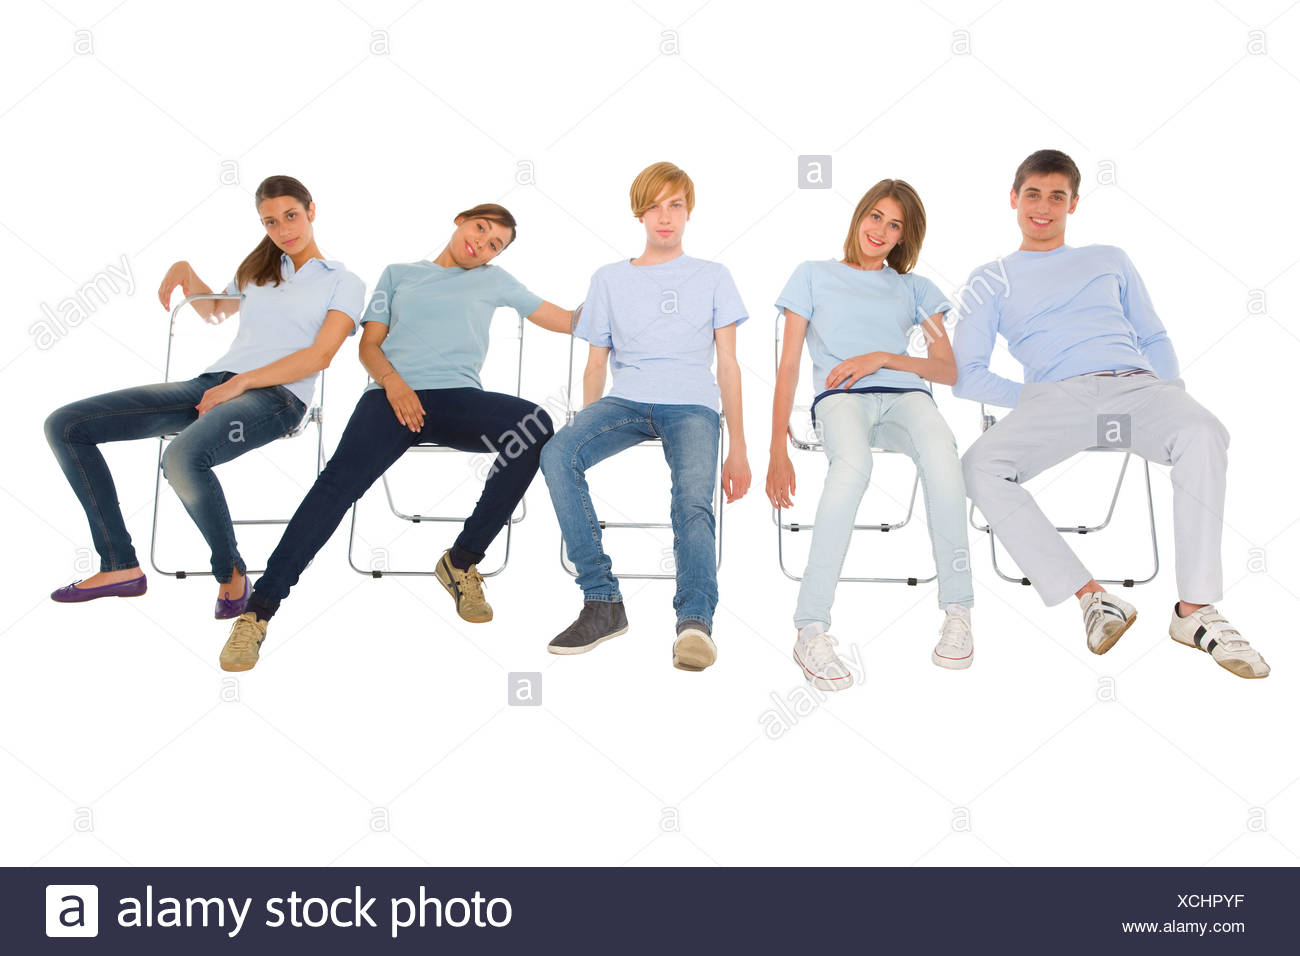 teenagers sitting on chairs - Stock Image